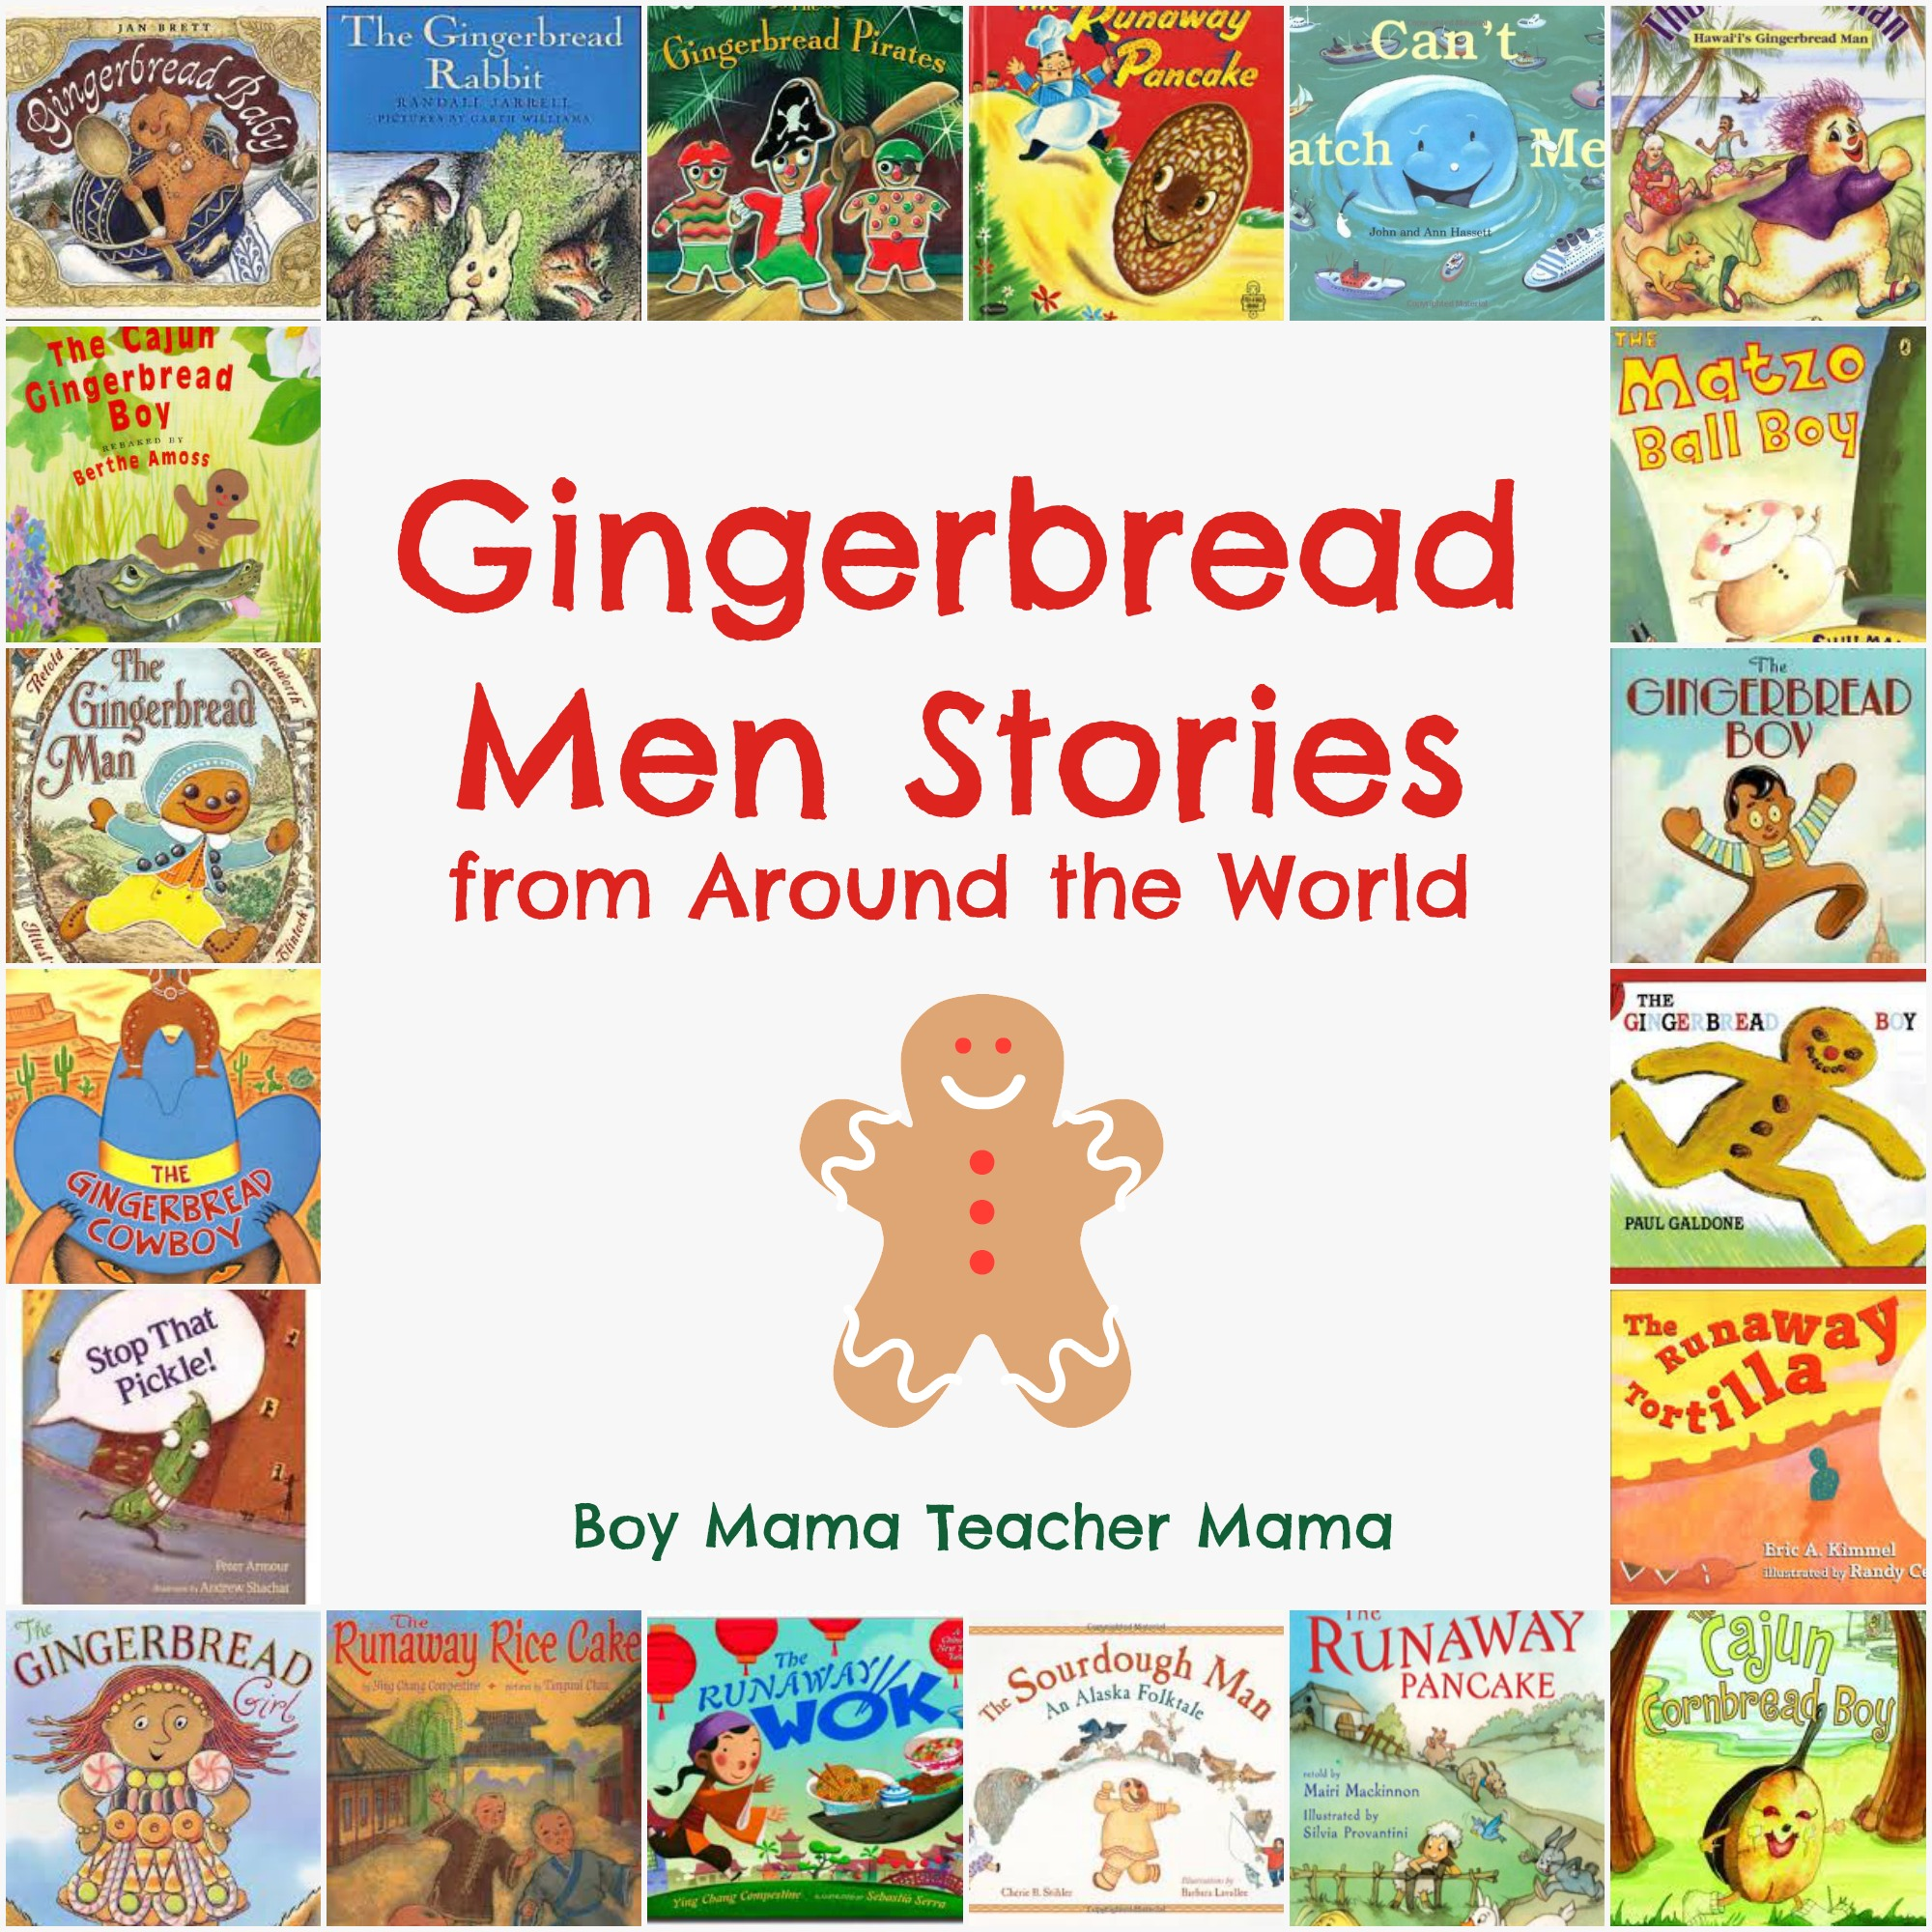 Boy Mama Teacher Mama | Gingerbread Men Tales from Around the World